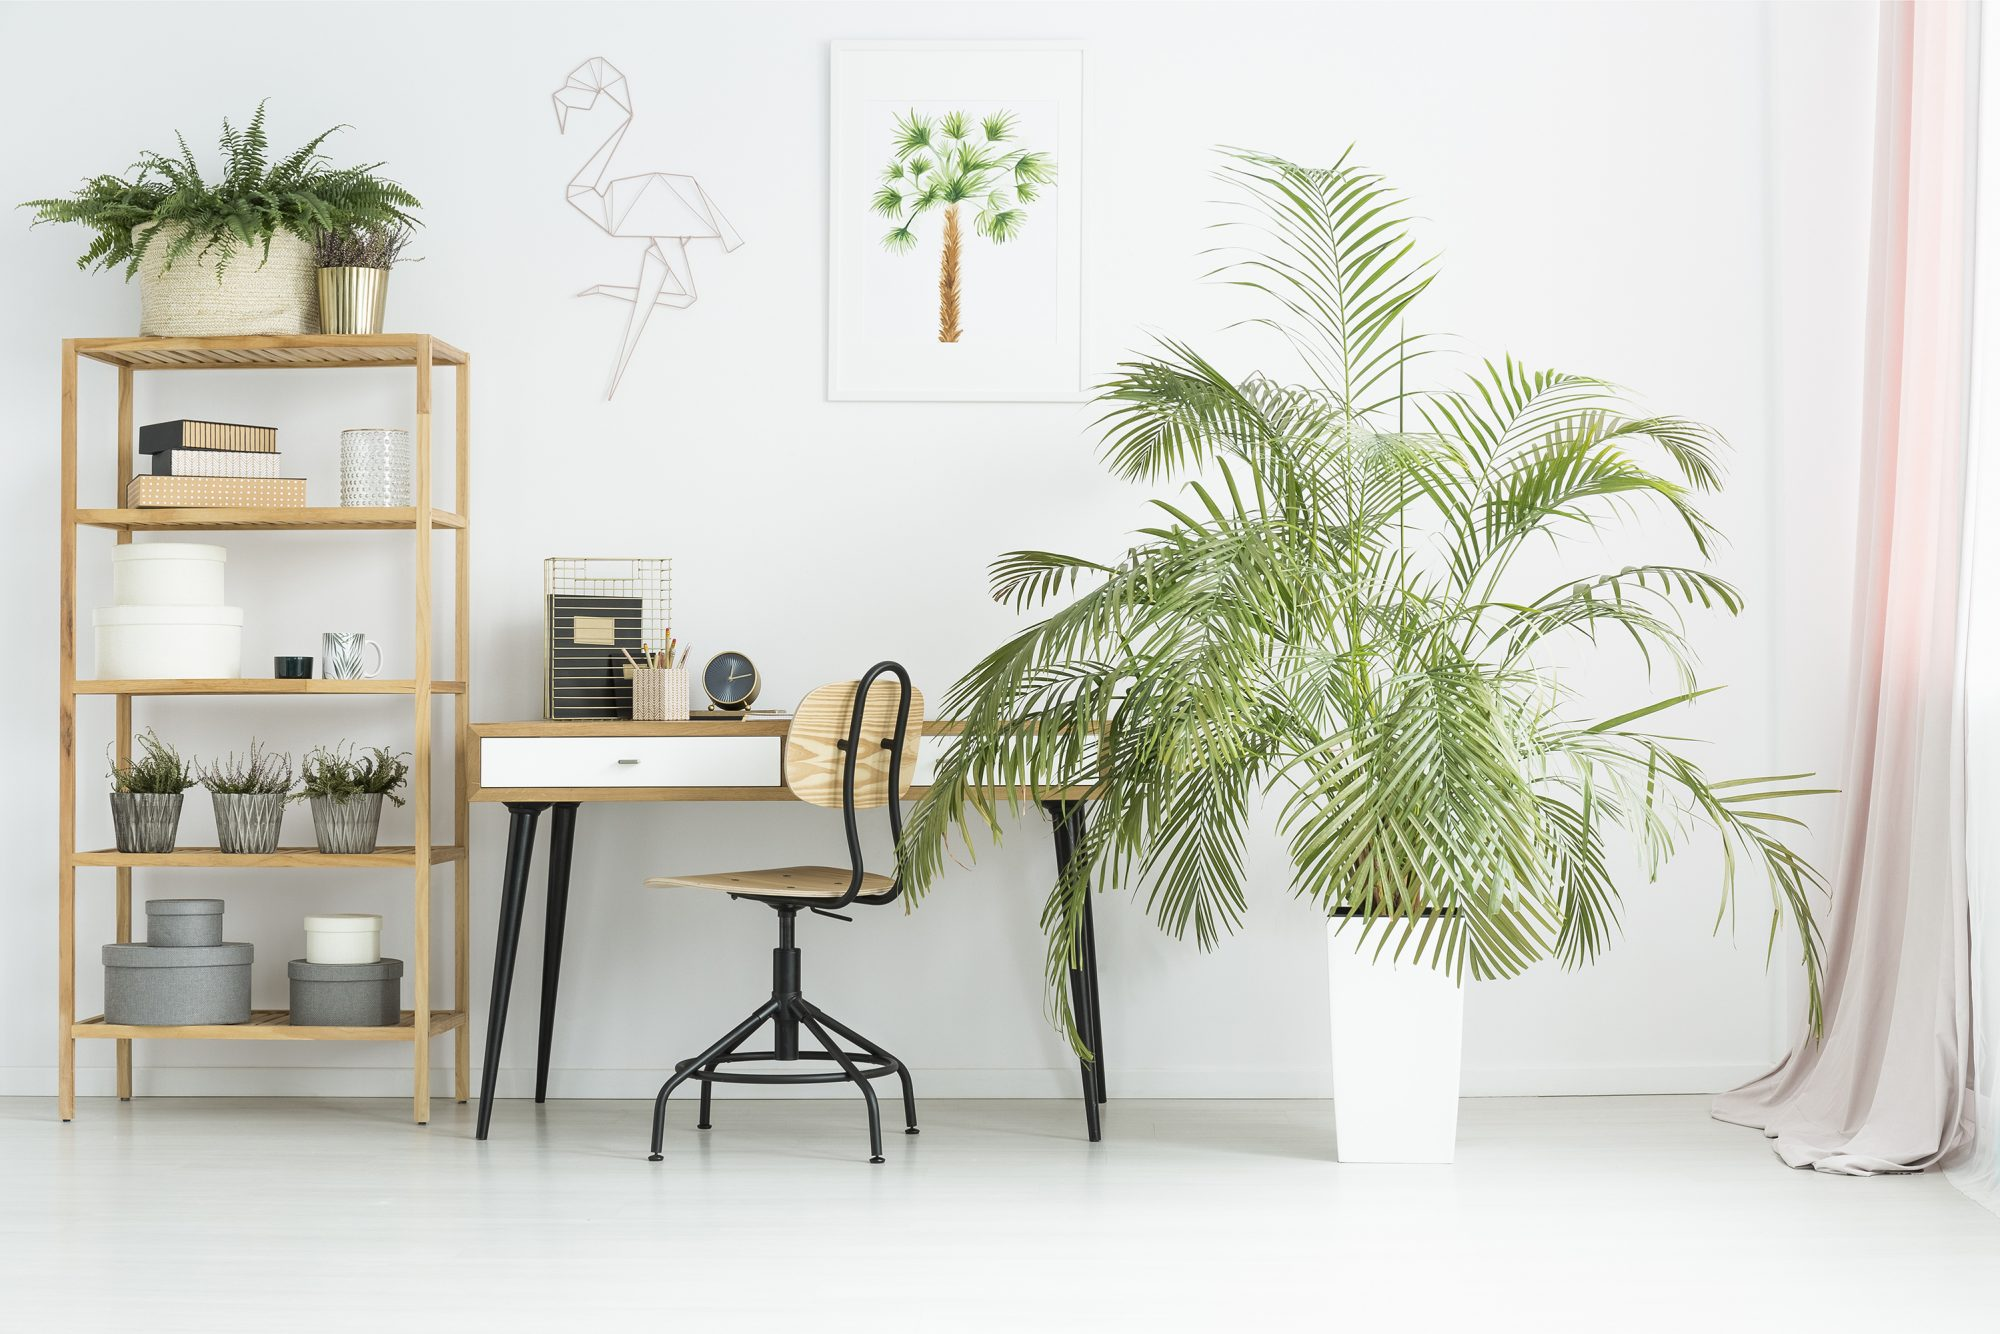 Workspace with indoor palm tree